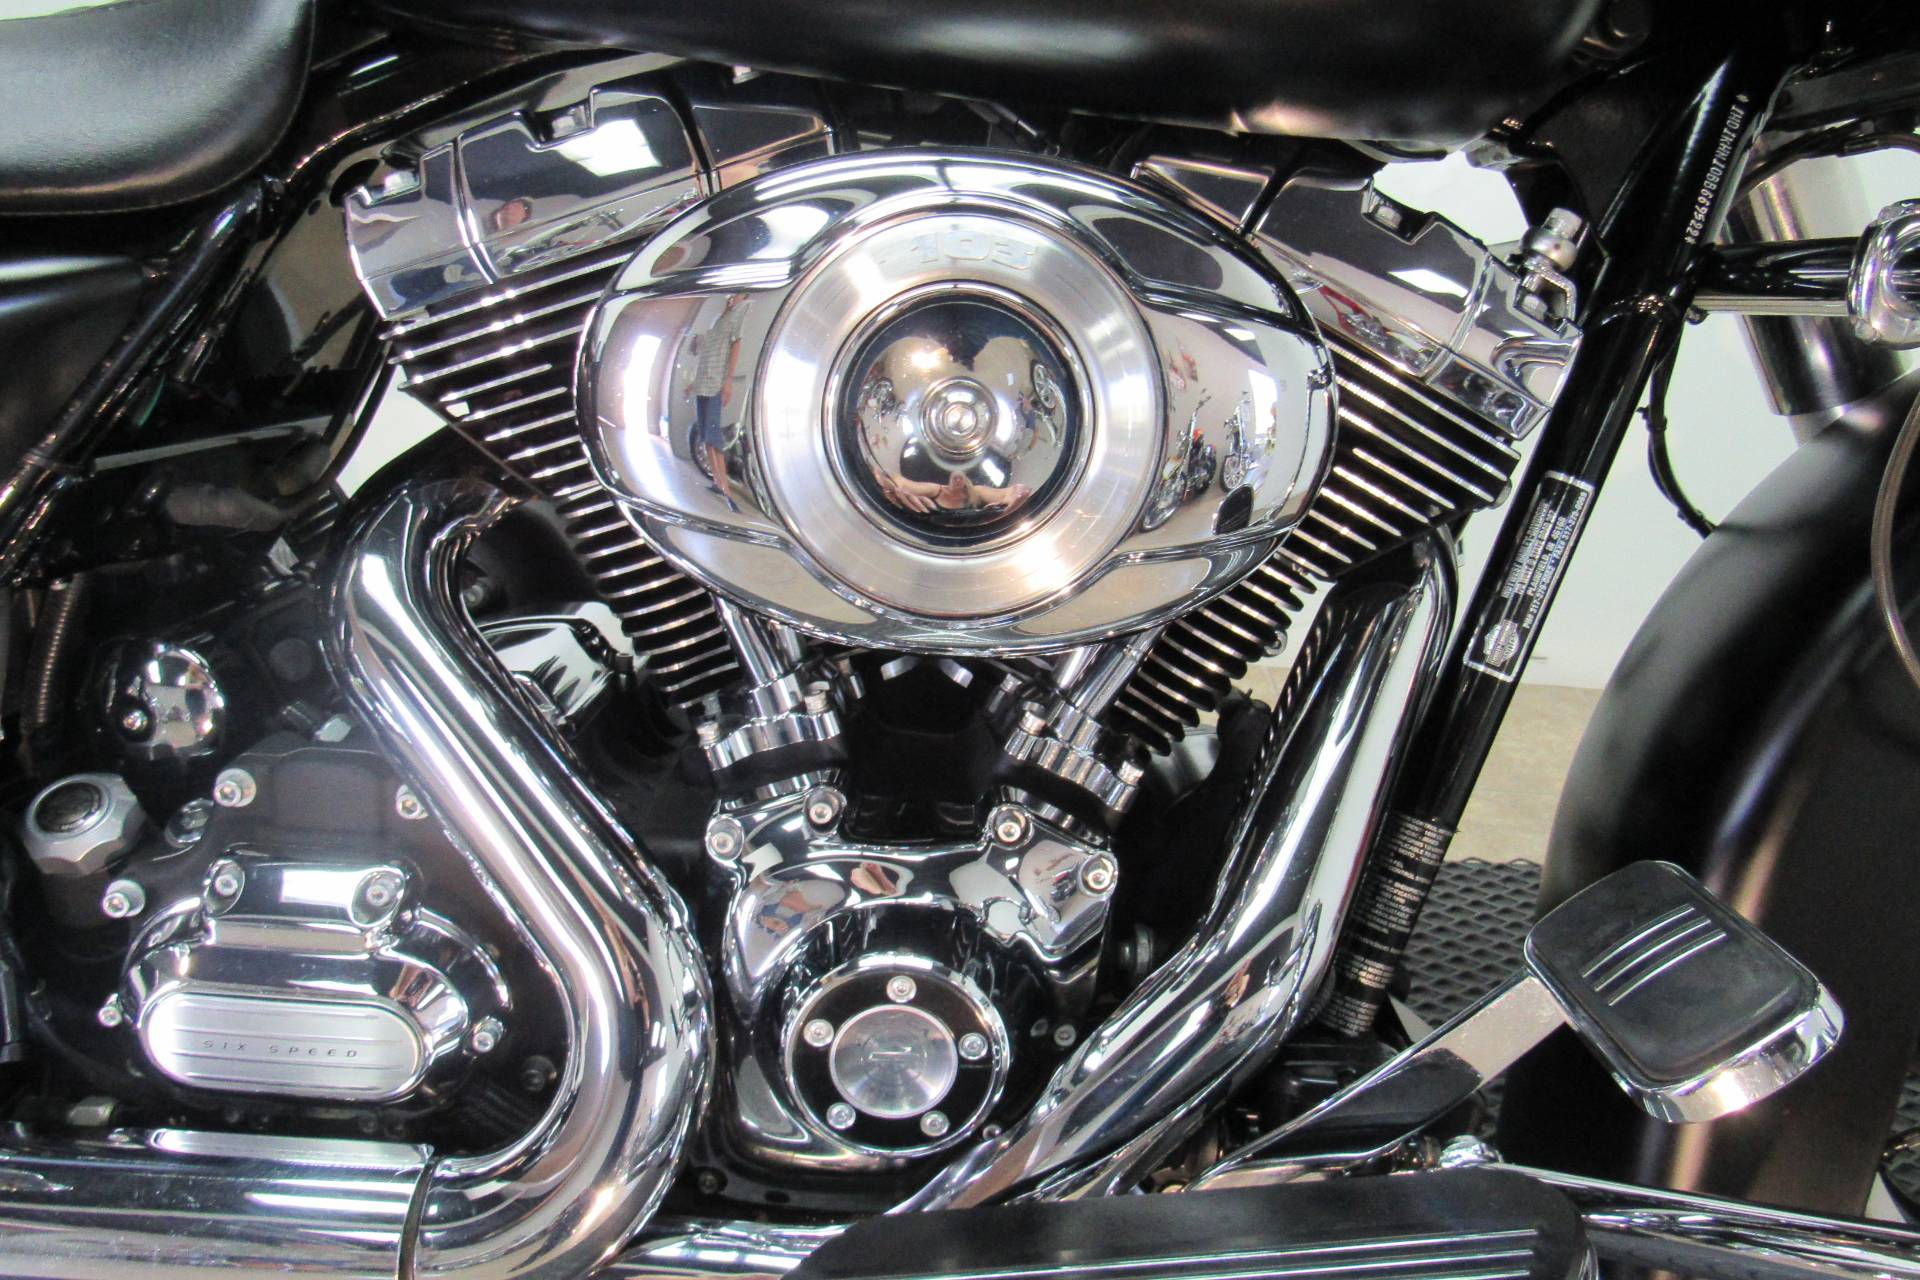 2011 Harley-Davidson Road Glide® Custom in Temecula, California - Photo 8